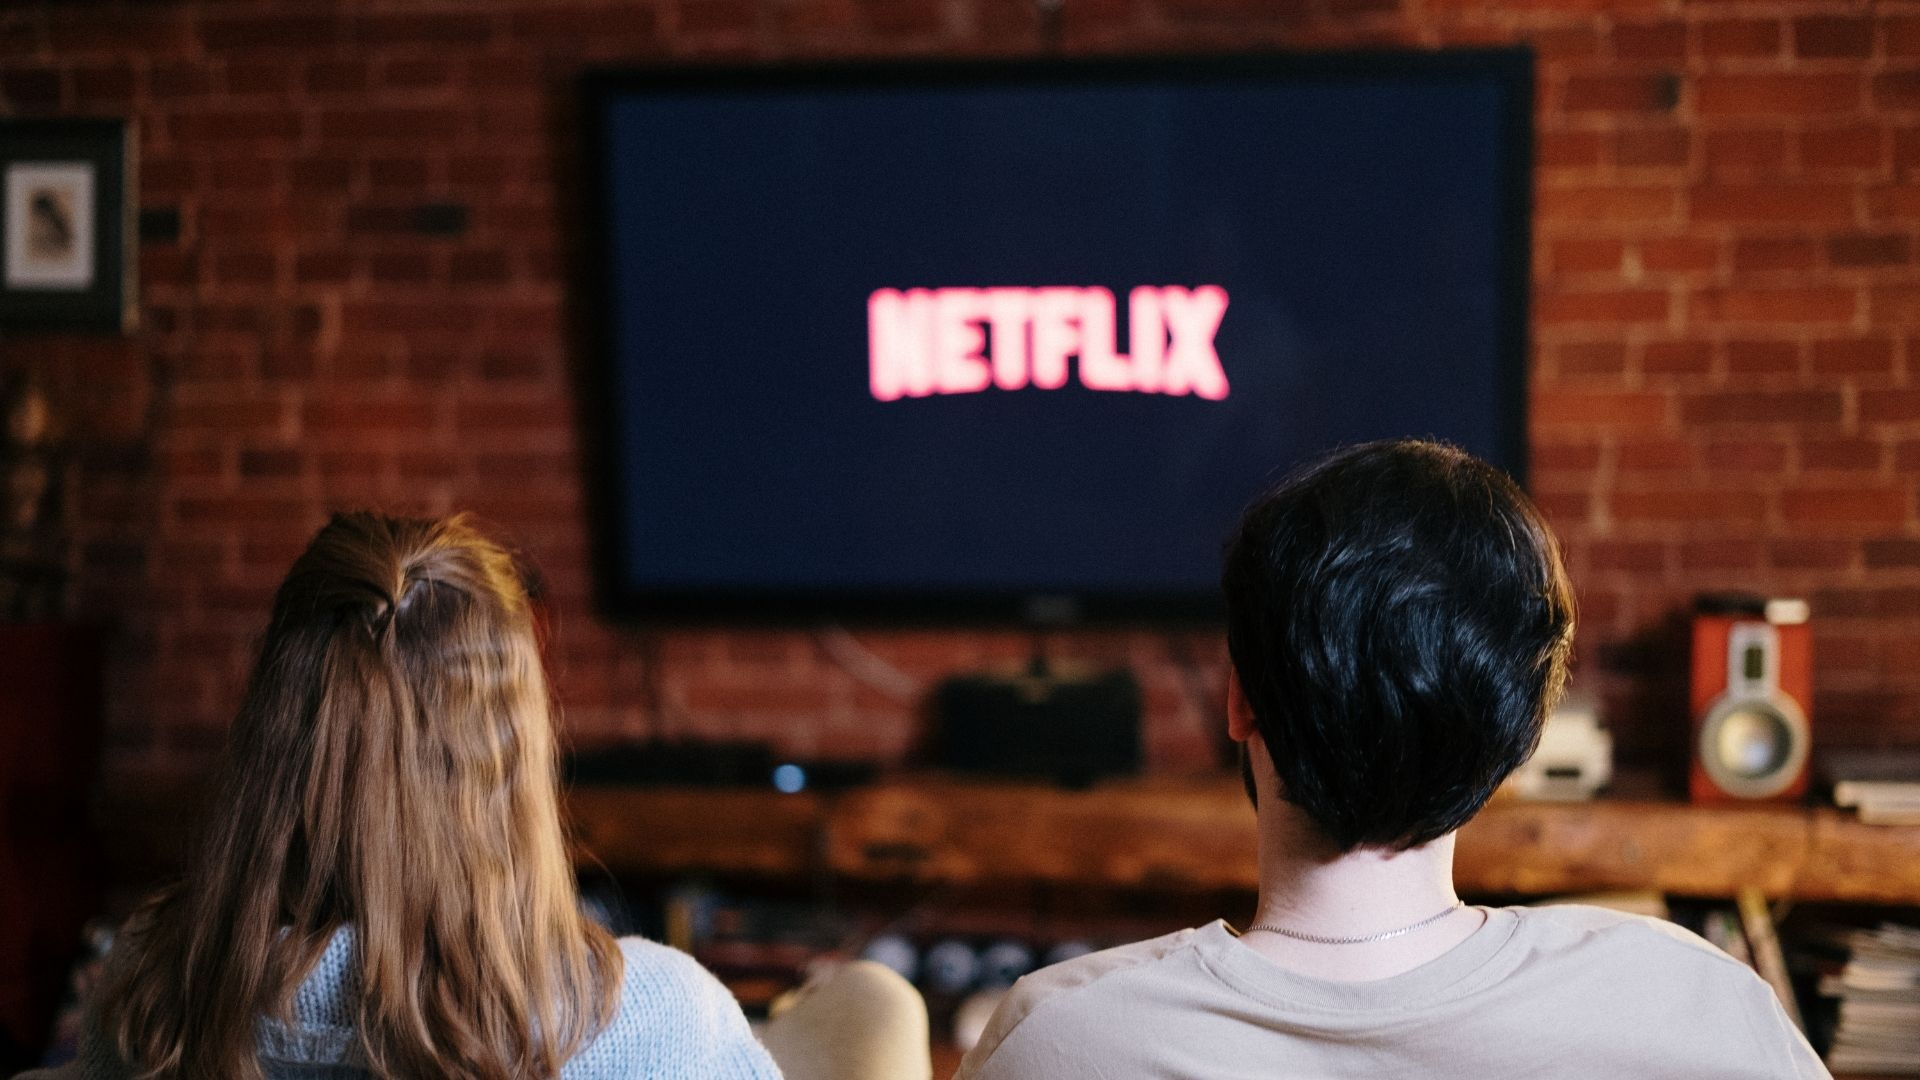 AVOD Platforms Forecast To Grow To $18 Billion By 2025, Streaming platform Netflix may soon crack down on password sharing and other top news